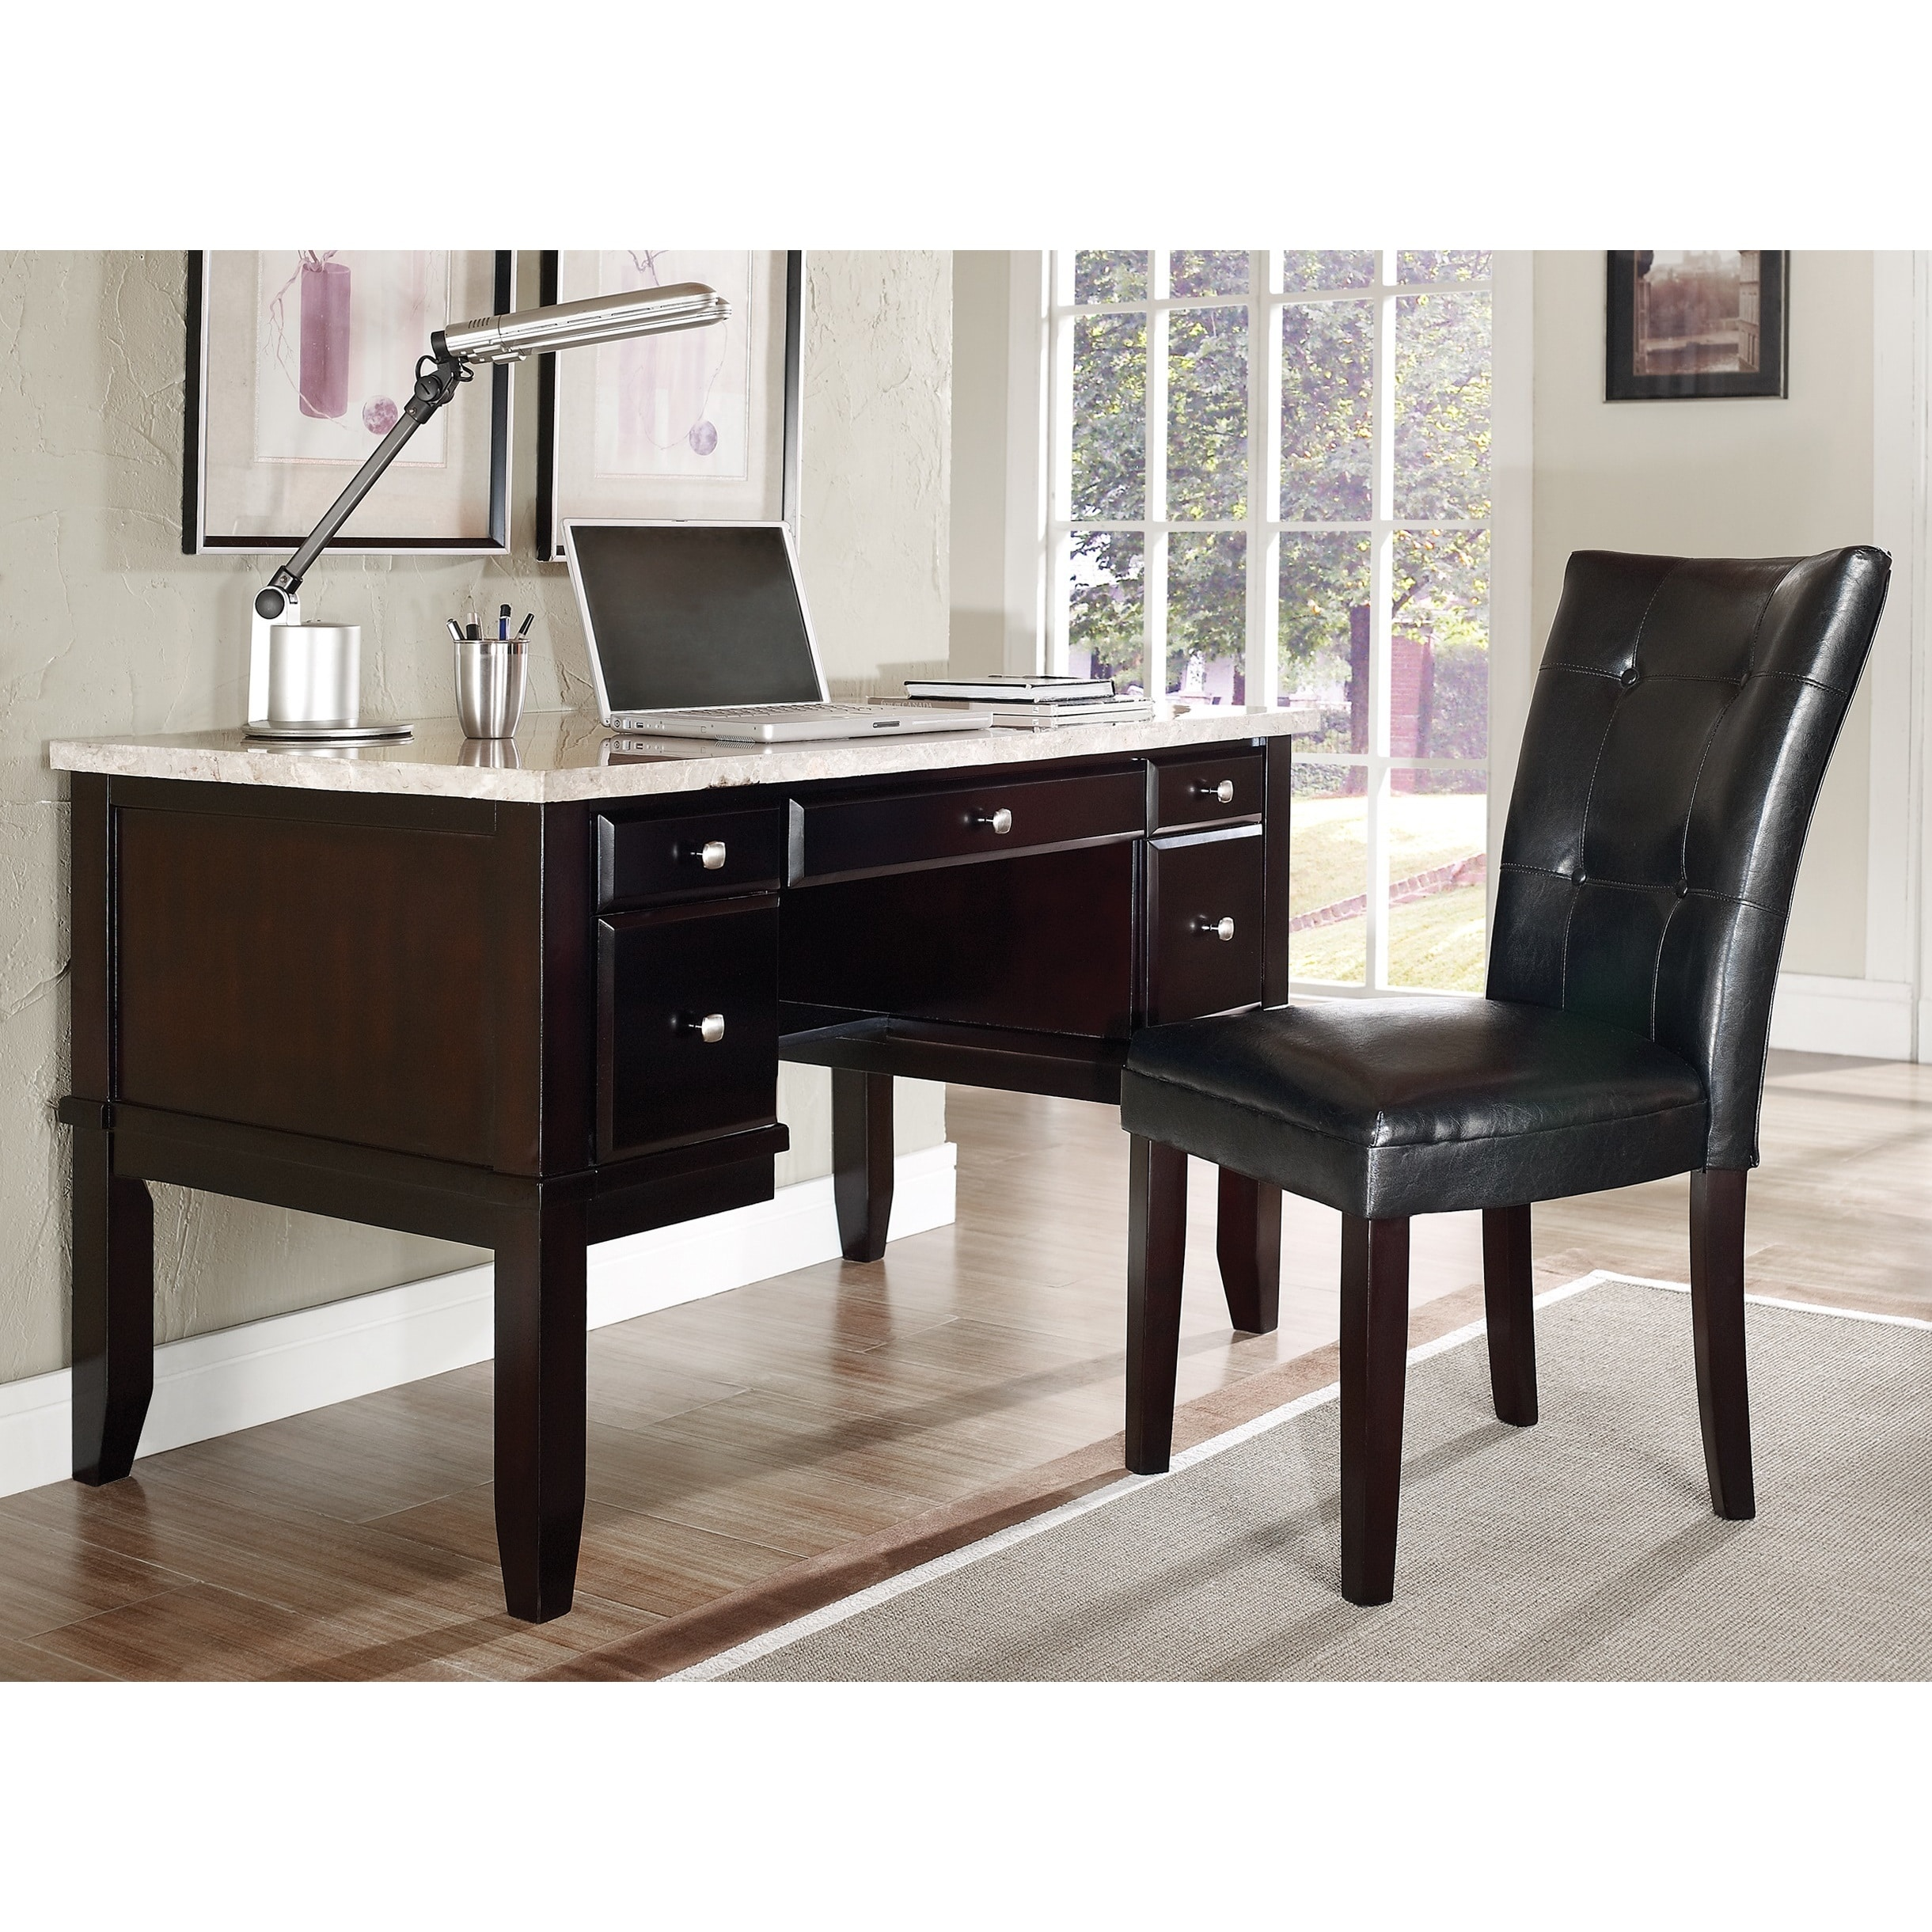 Greyson Living Malone White Marble Top Desk Set by